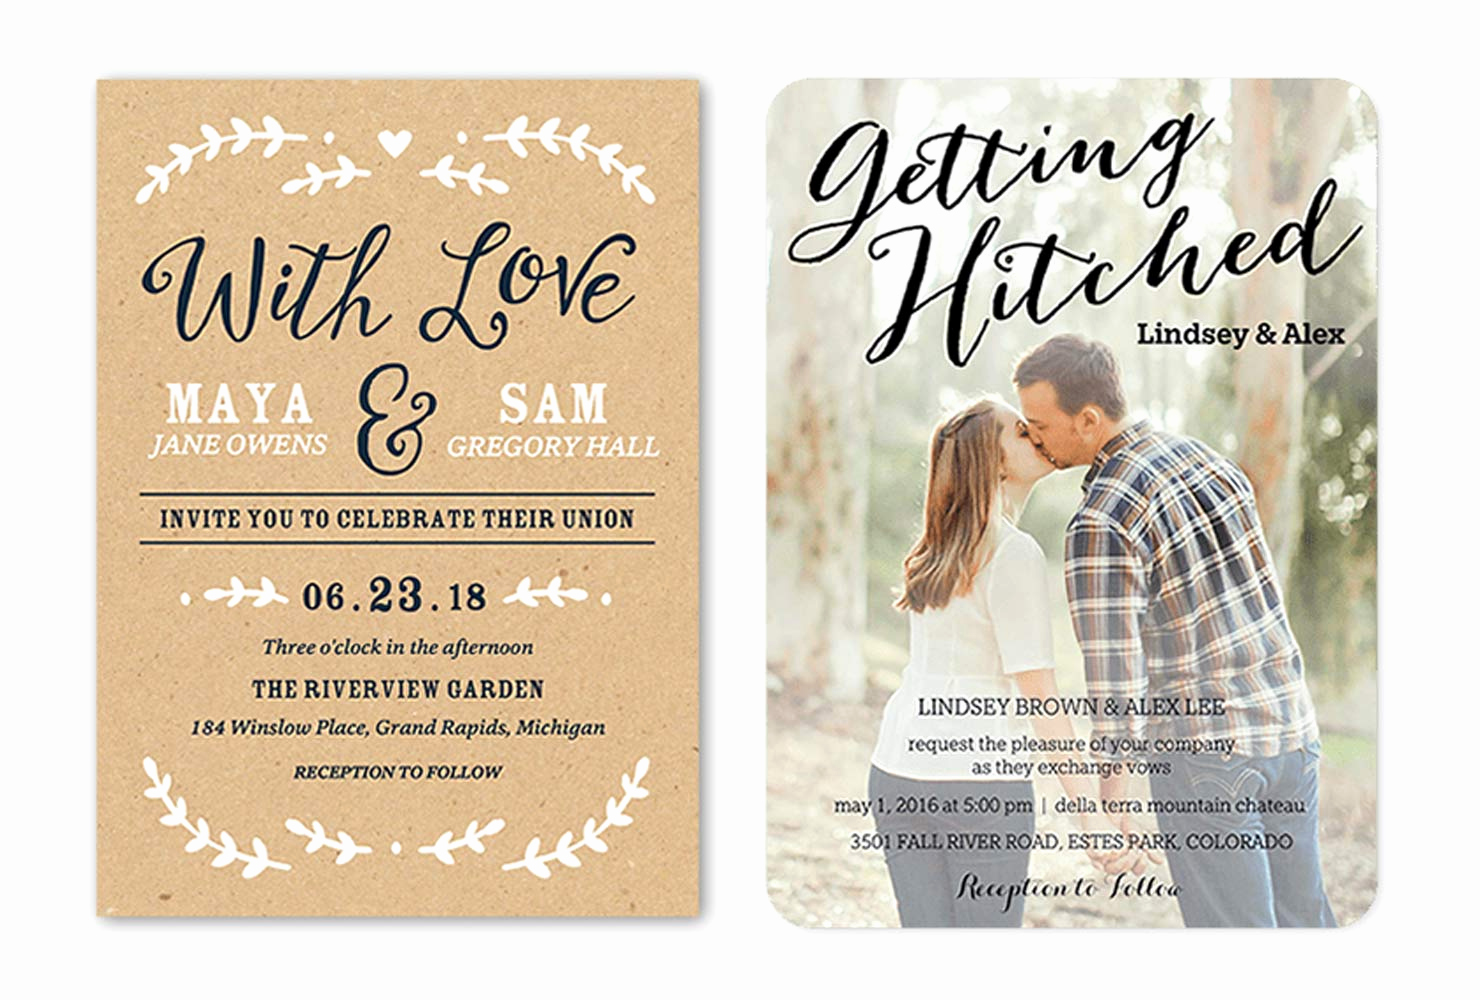 Wedding Reception Invitation Ideas Lovely 35 Wedding Invitation Wording Examples 2019